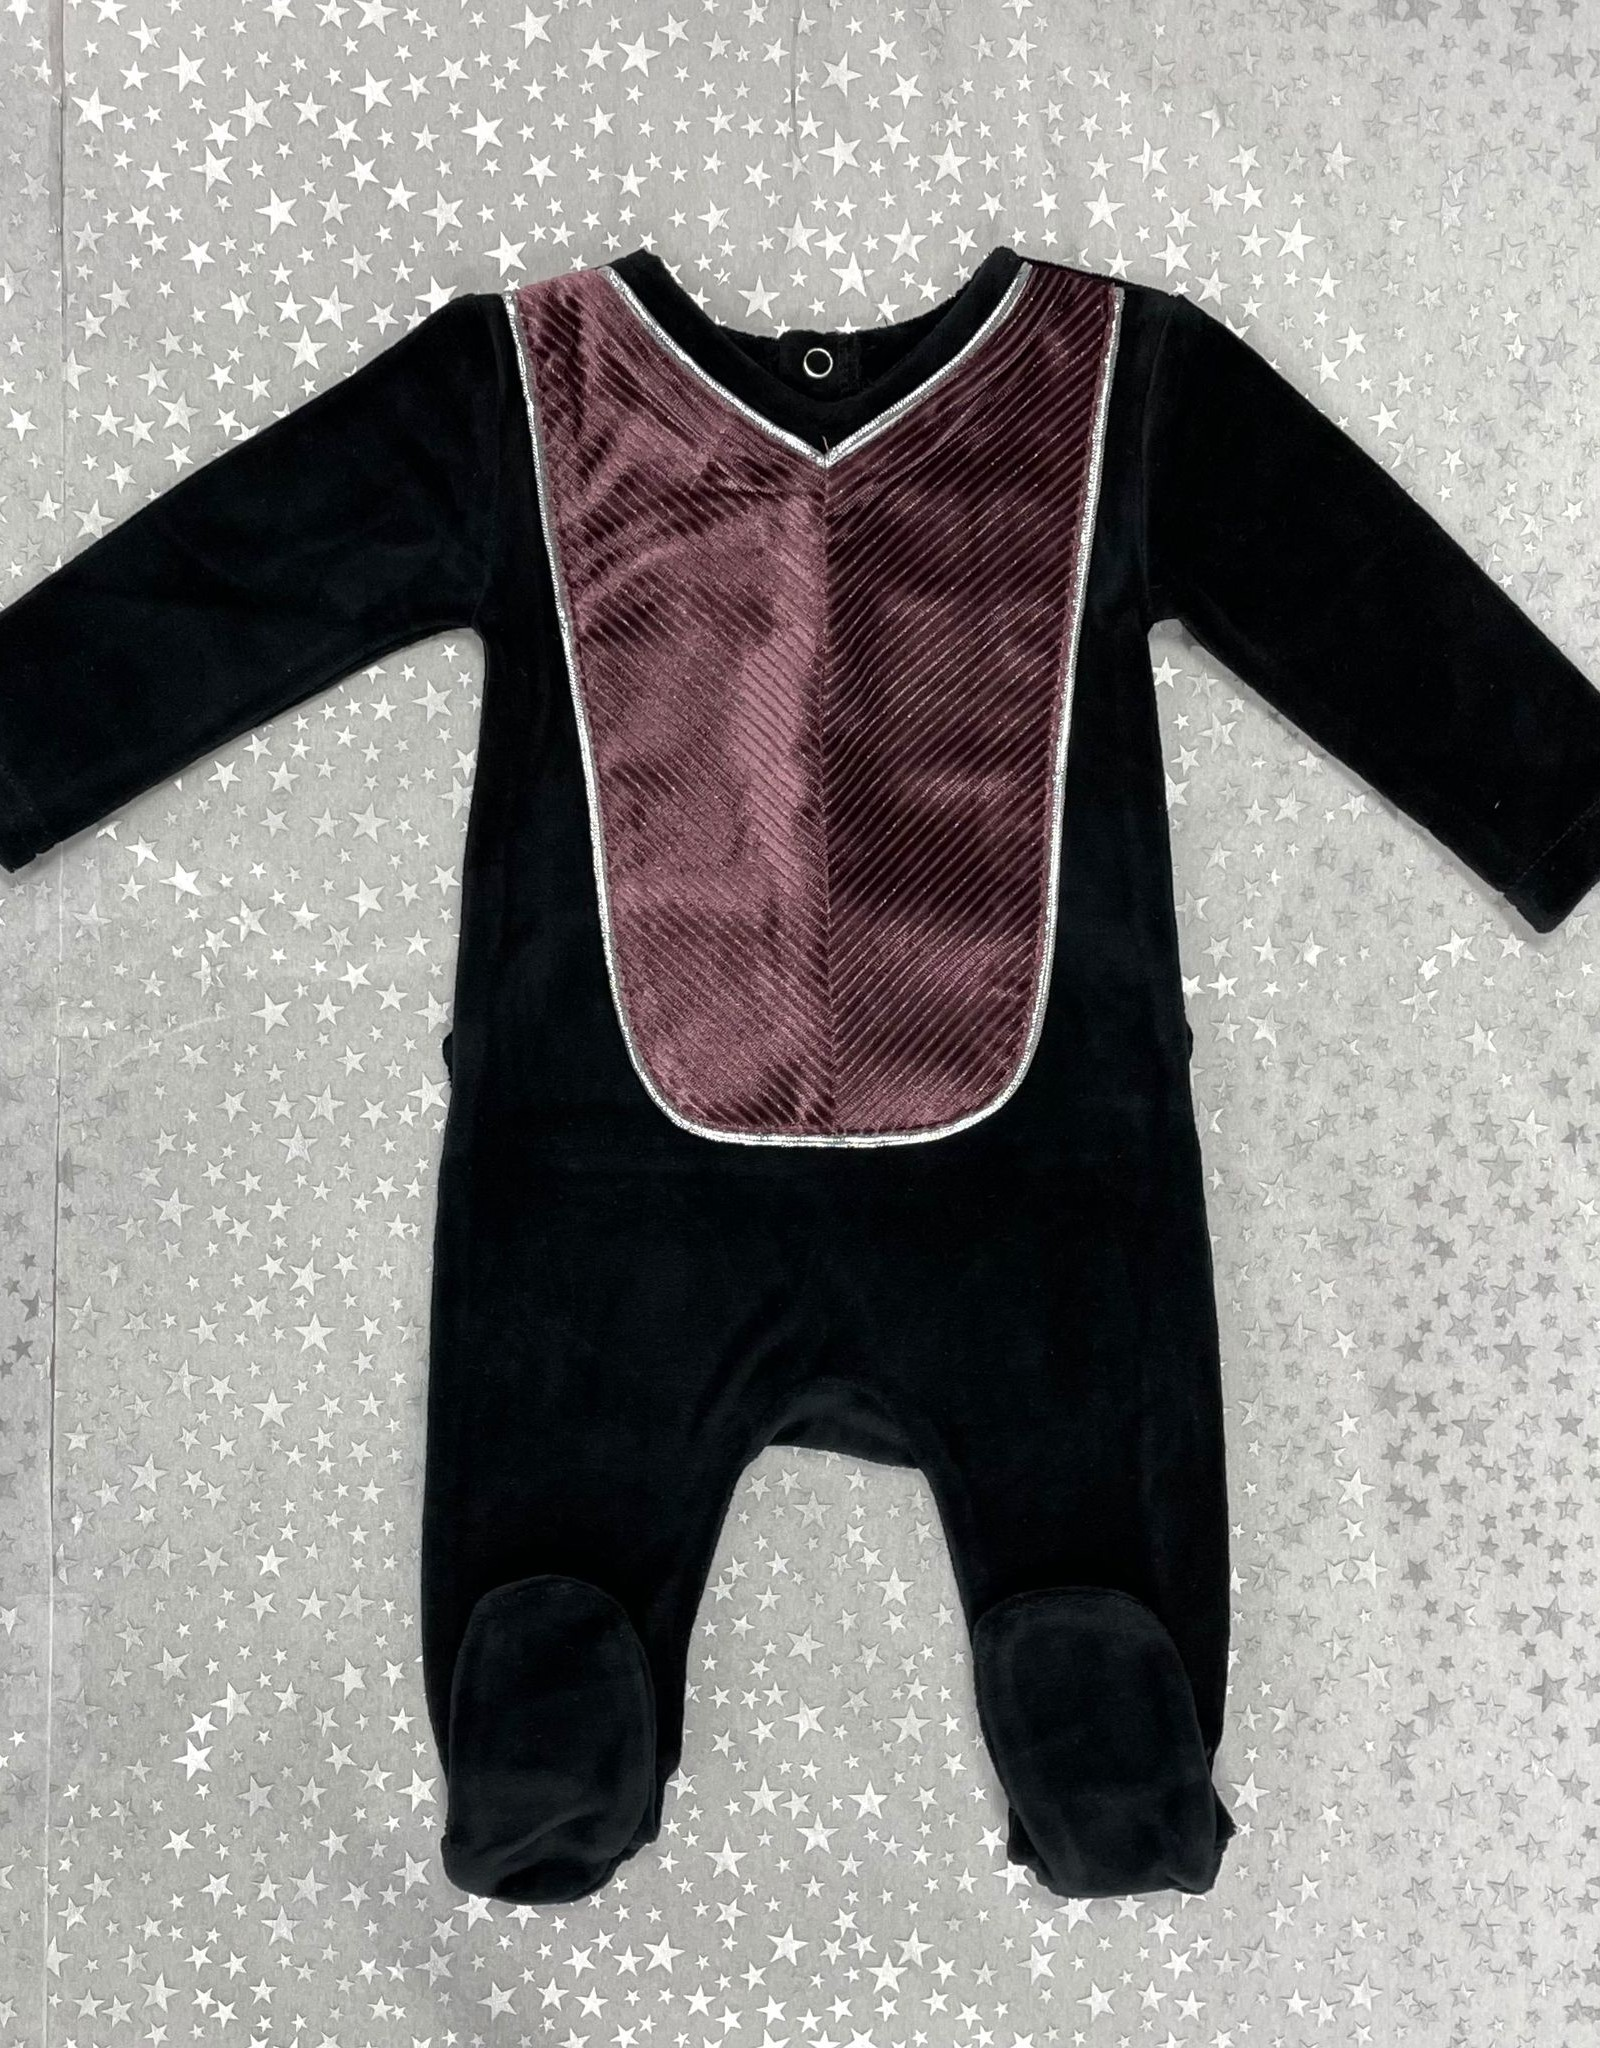 Blinqi Blinqi Ribbed Panel Footie